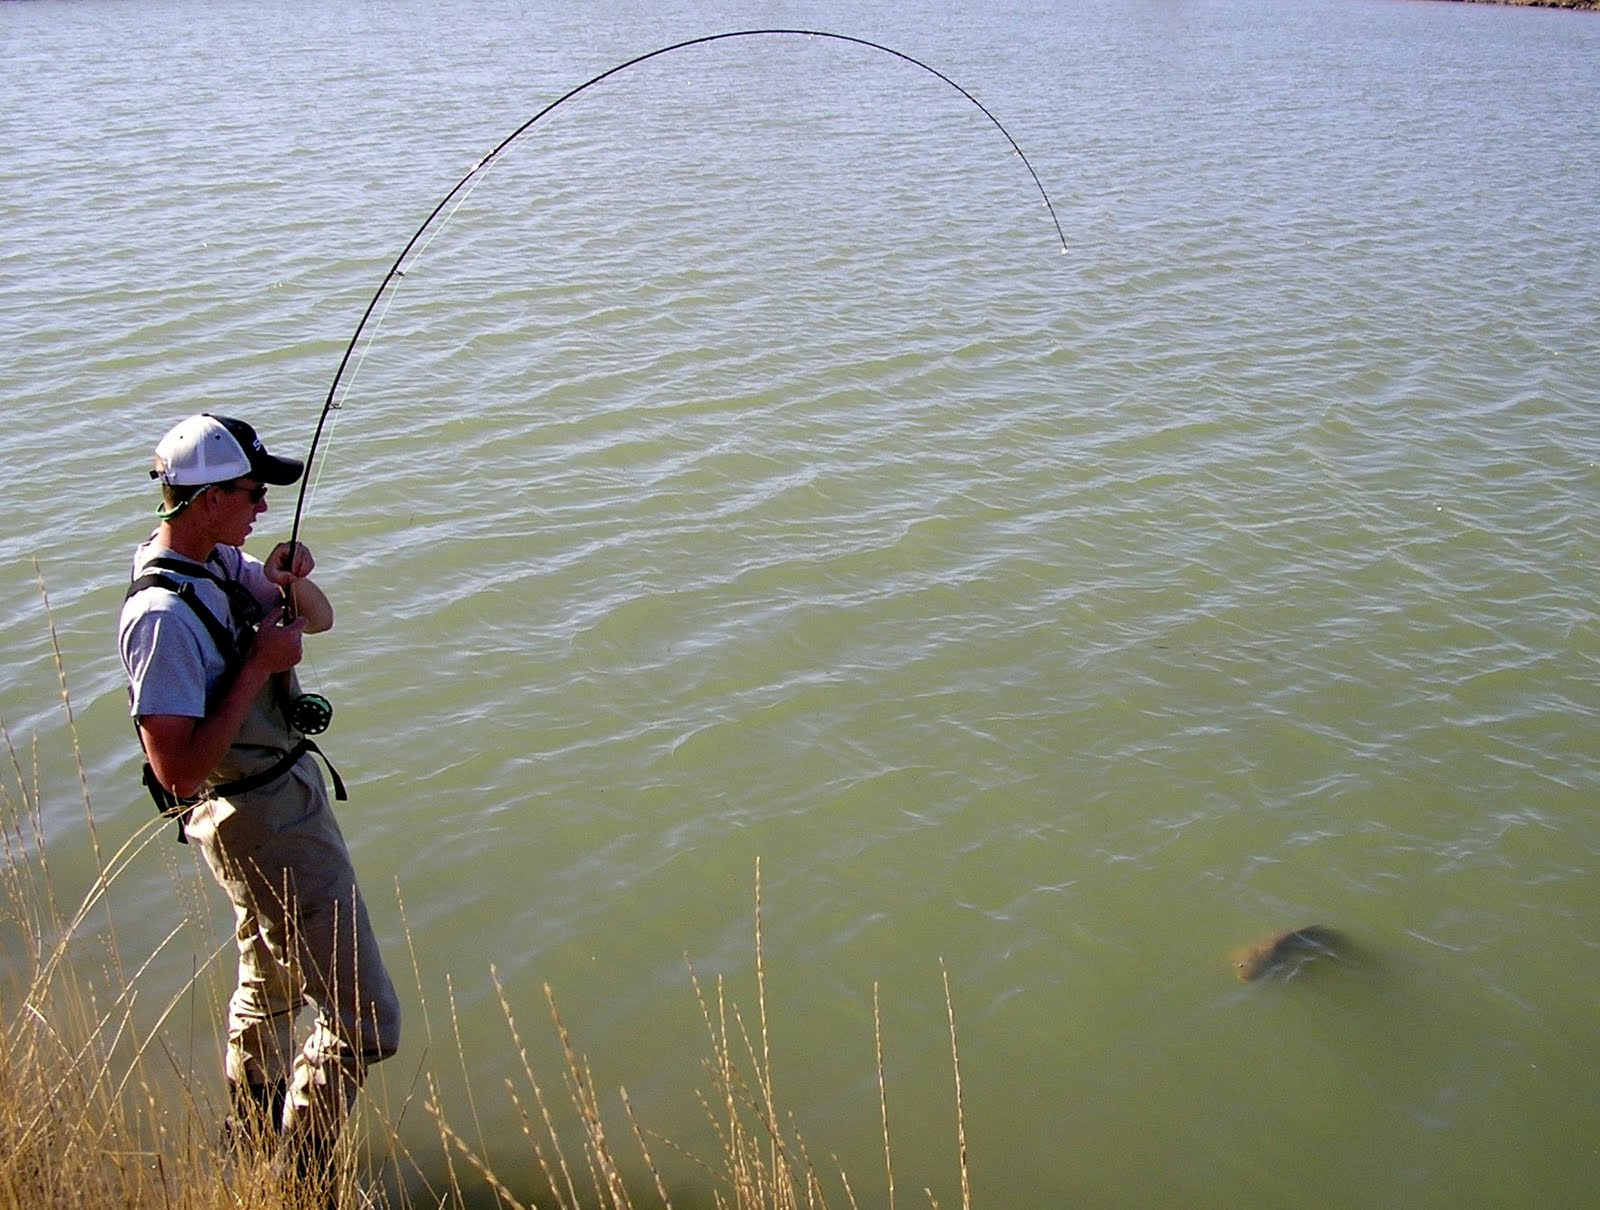 Wwxx http://coloradoflyfishingreports.blogspot.com/2009_01_01_archive.html